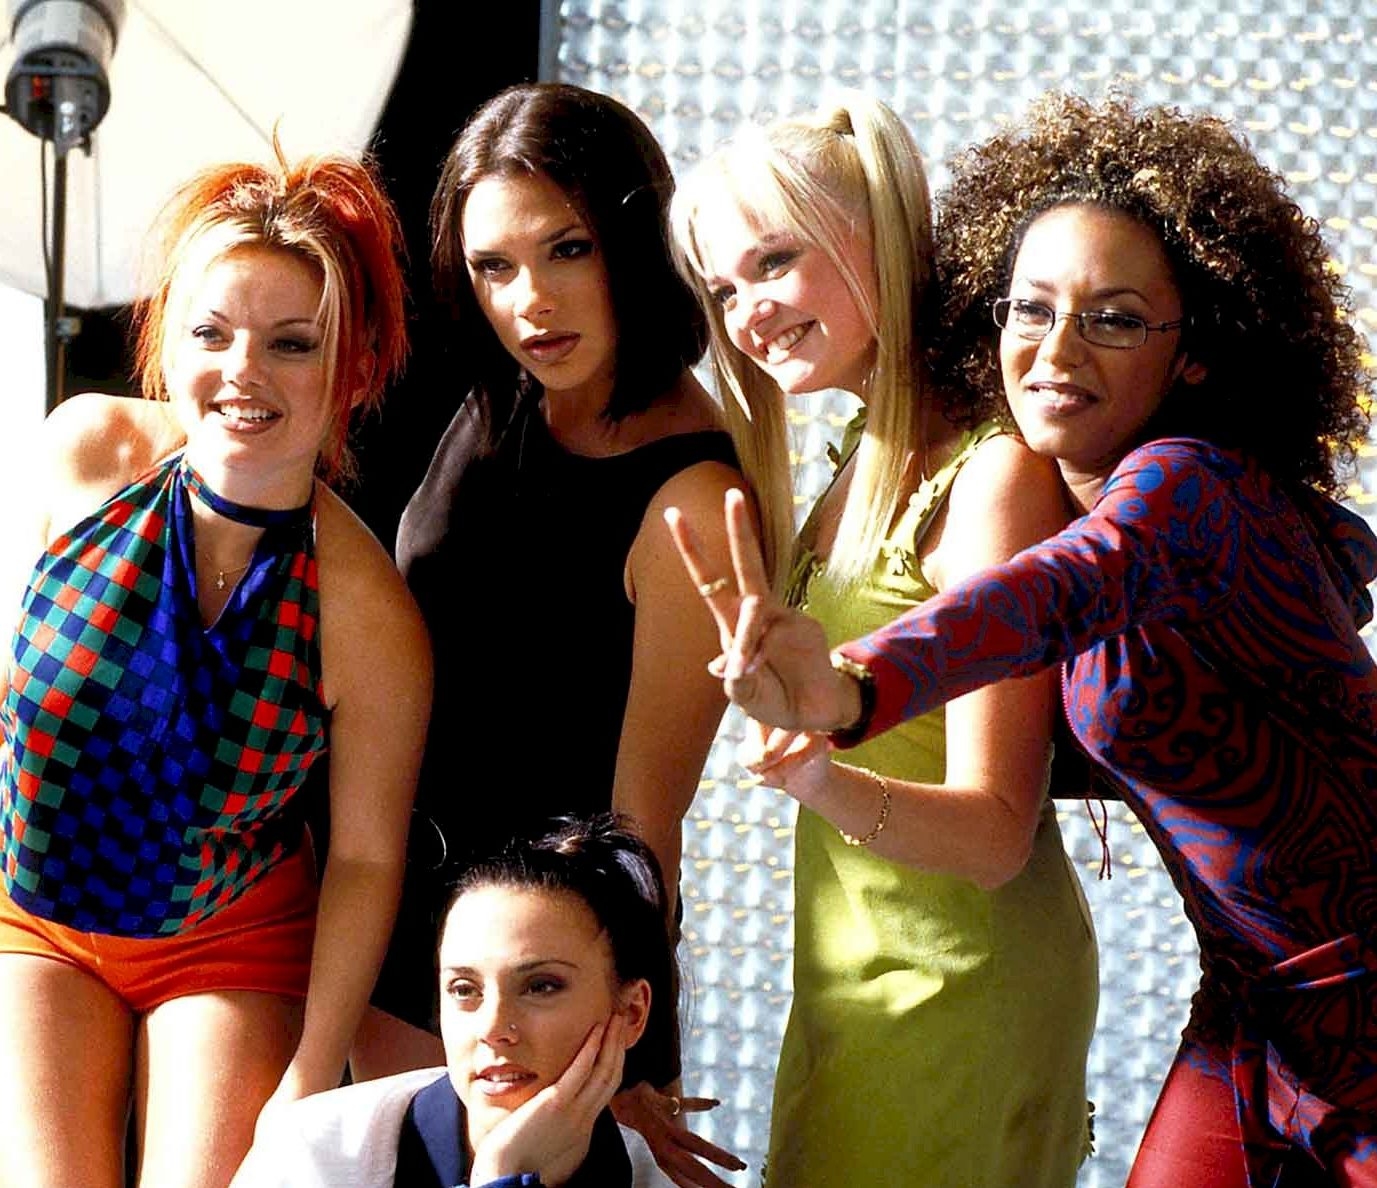 spice world 3 web 1.1800x1200 e1610105691622 20 Things You Never Knew About The Cult Classic Movie Tank Girl